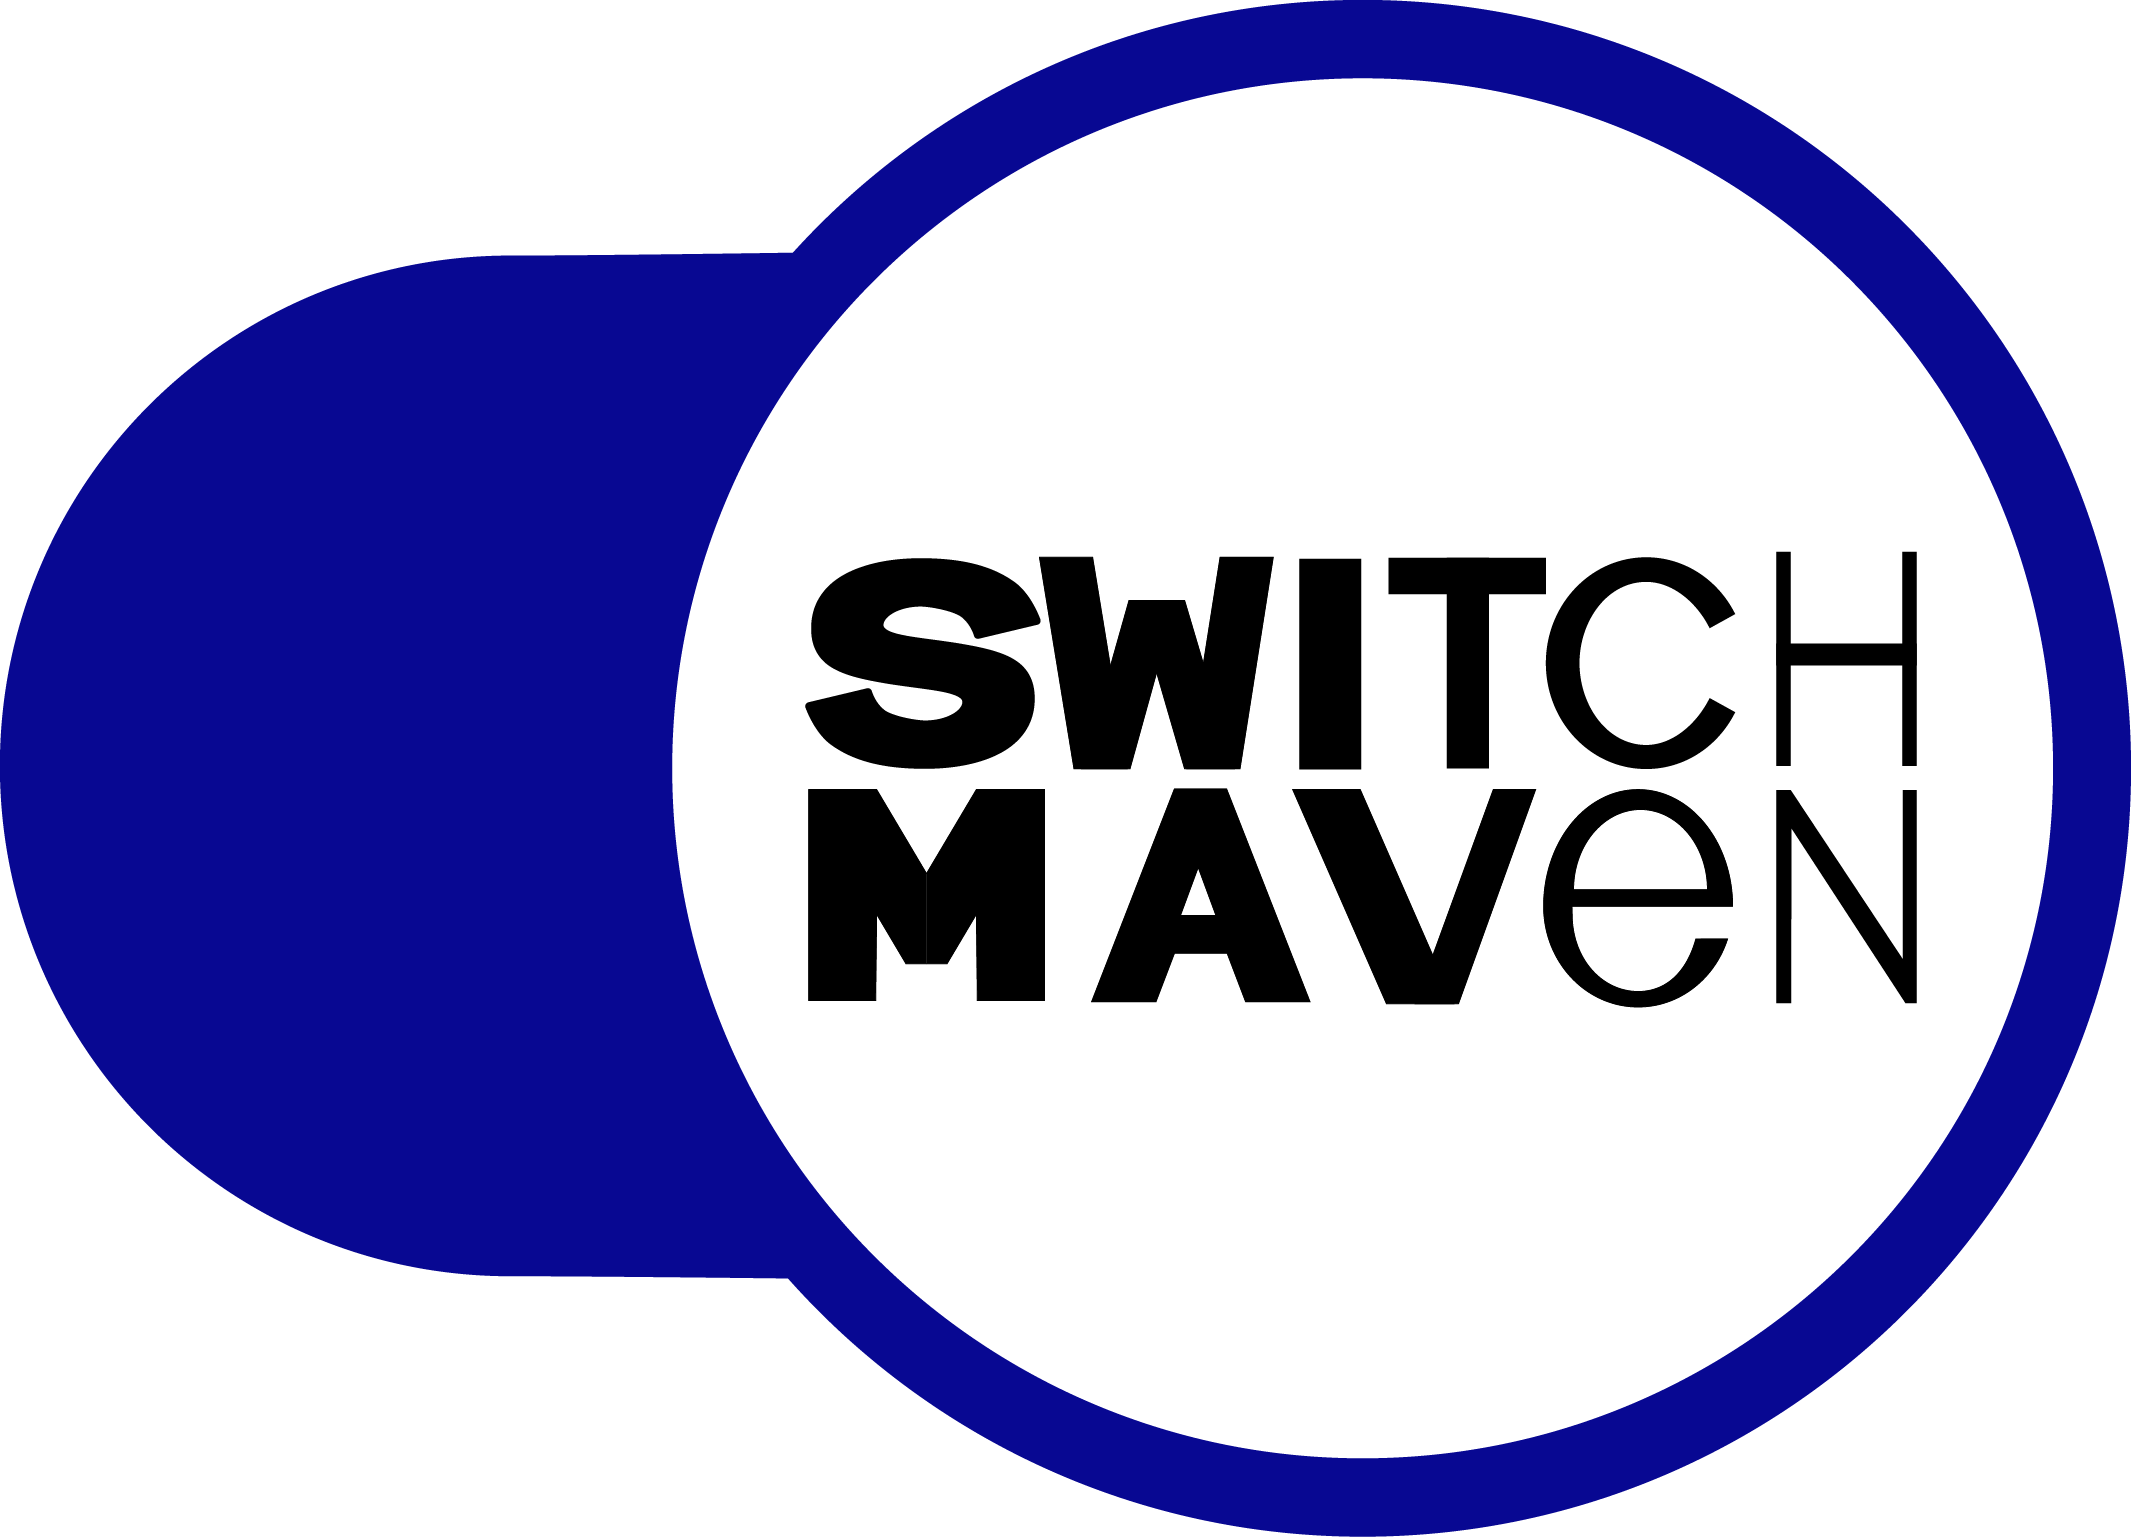 switch maven